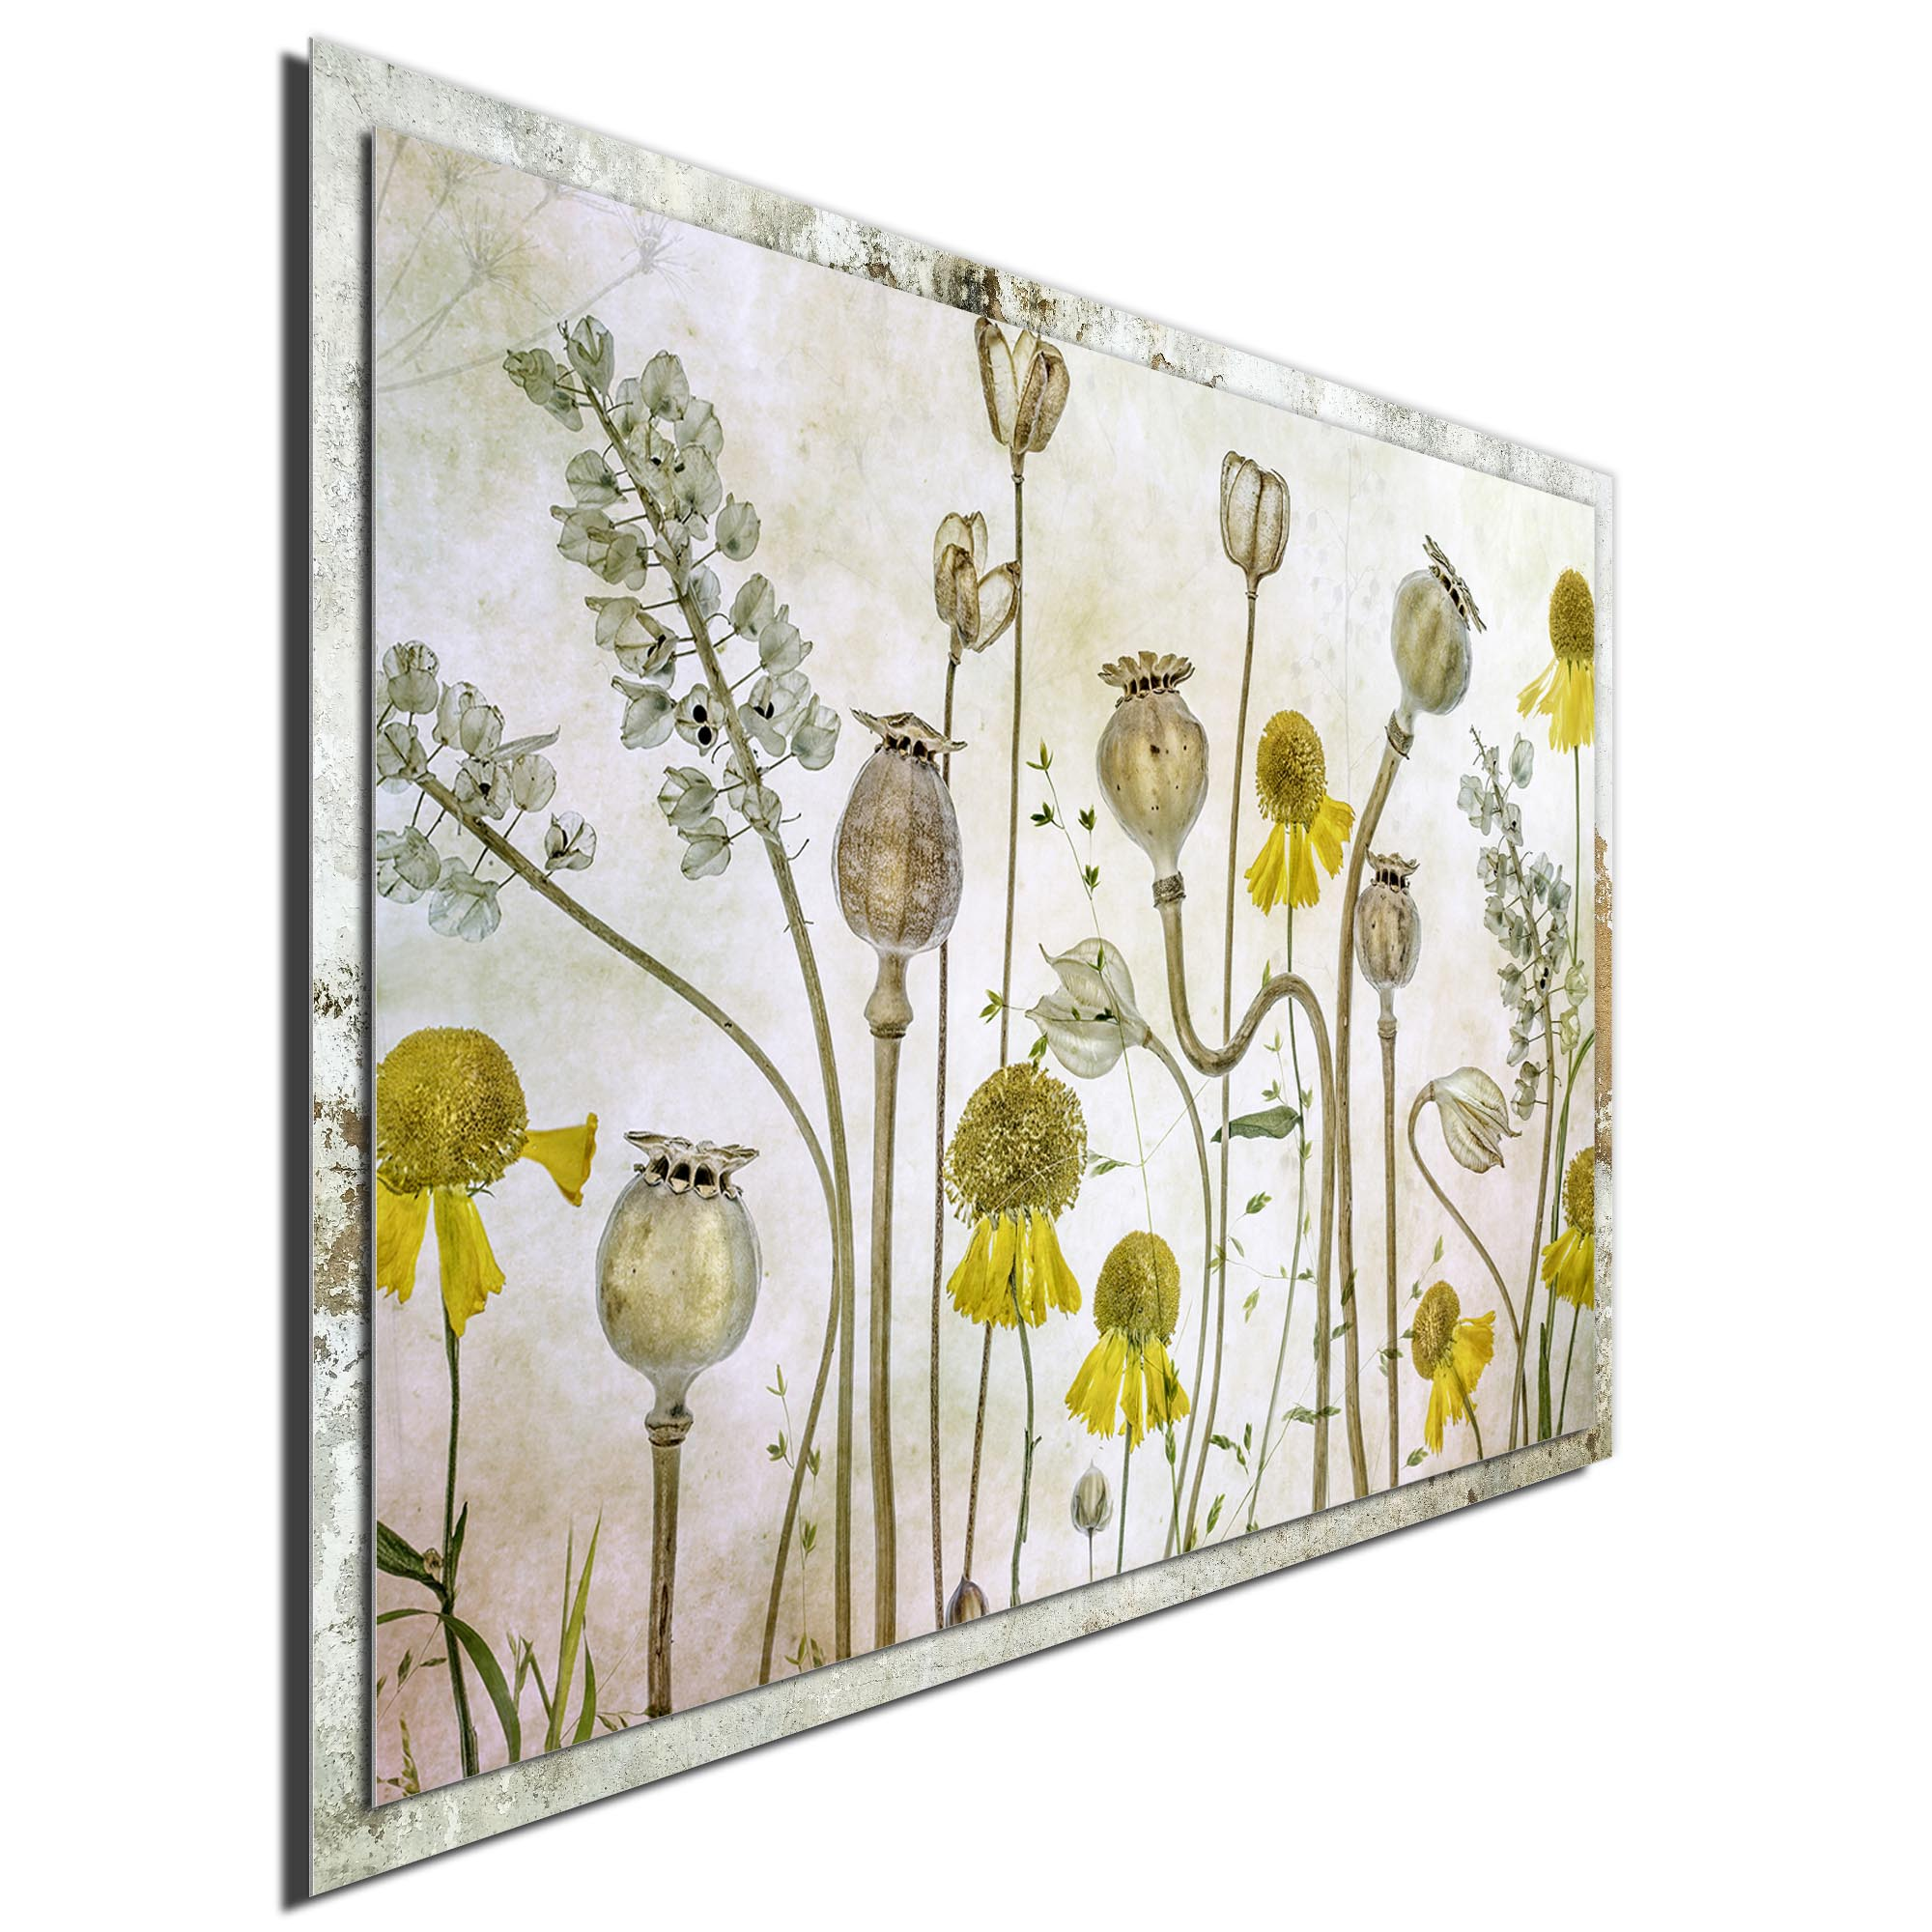 Poppies and Helenium by Mandy Disher - Modern Farmhouse Floral on Metal - Image 2